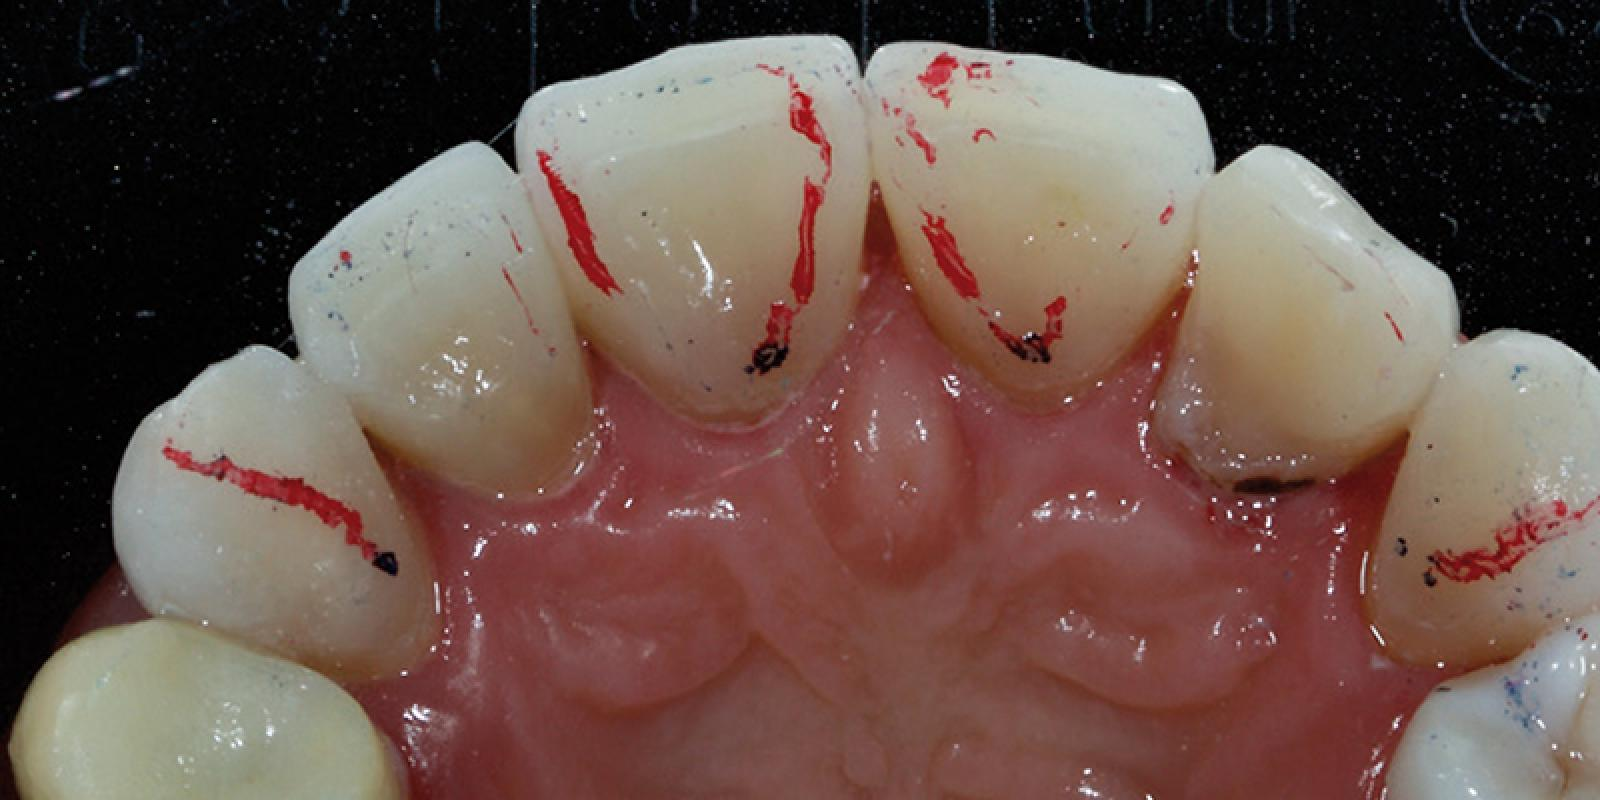 Jason Smithson - Direct Resin Restorations in the Anterior Dentition - Treating wear step 4